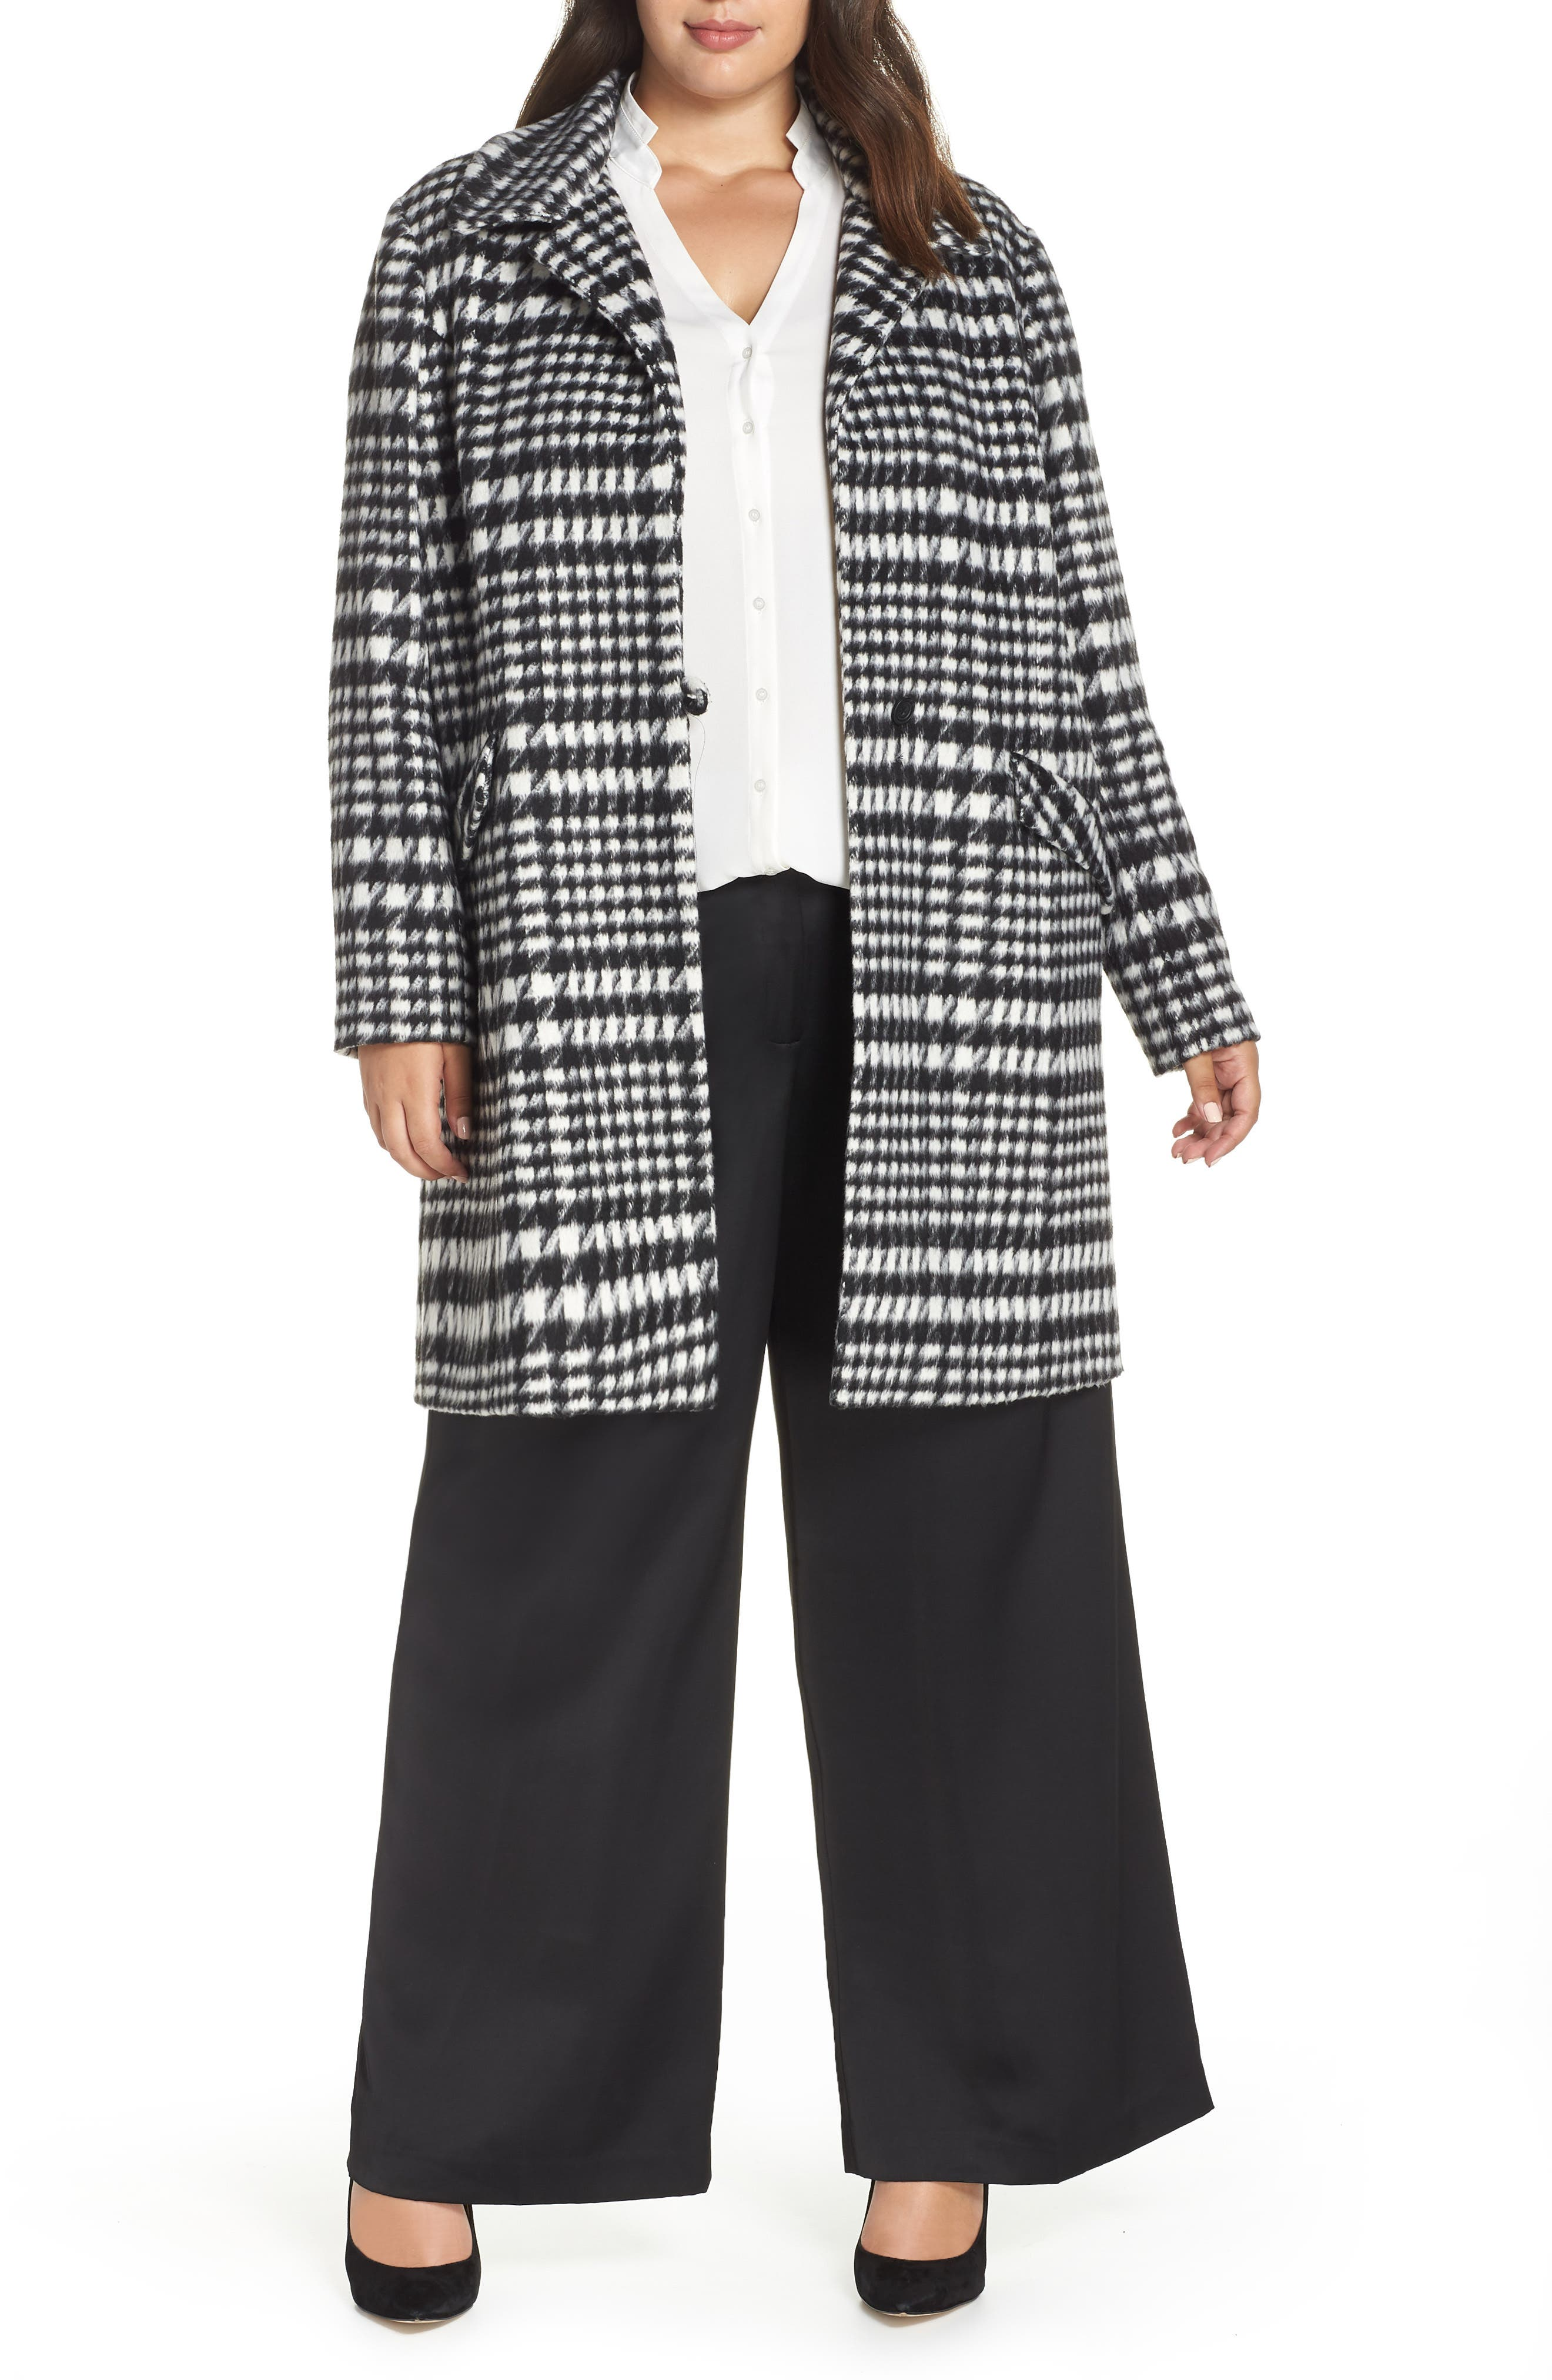 Brushed Houndstooth Coat,                             Main thumbnail 1, color,                             BLACK- IVORY HOUNDSTOOTH